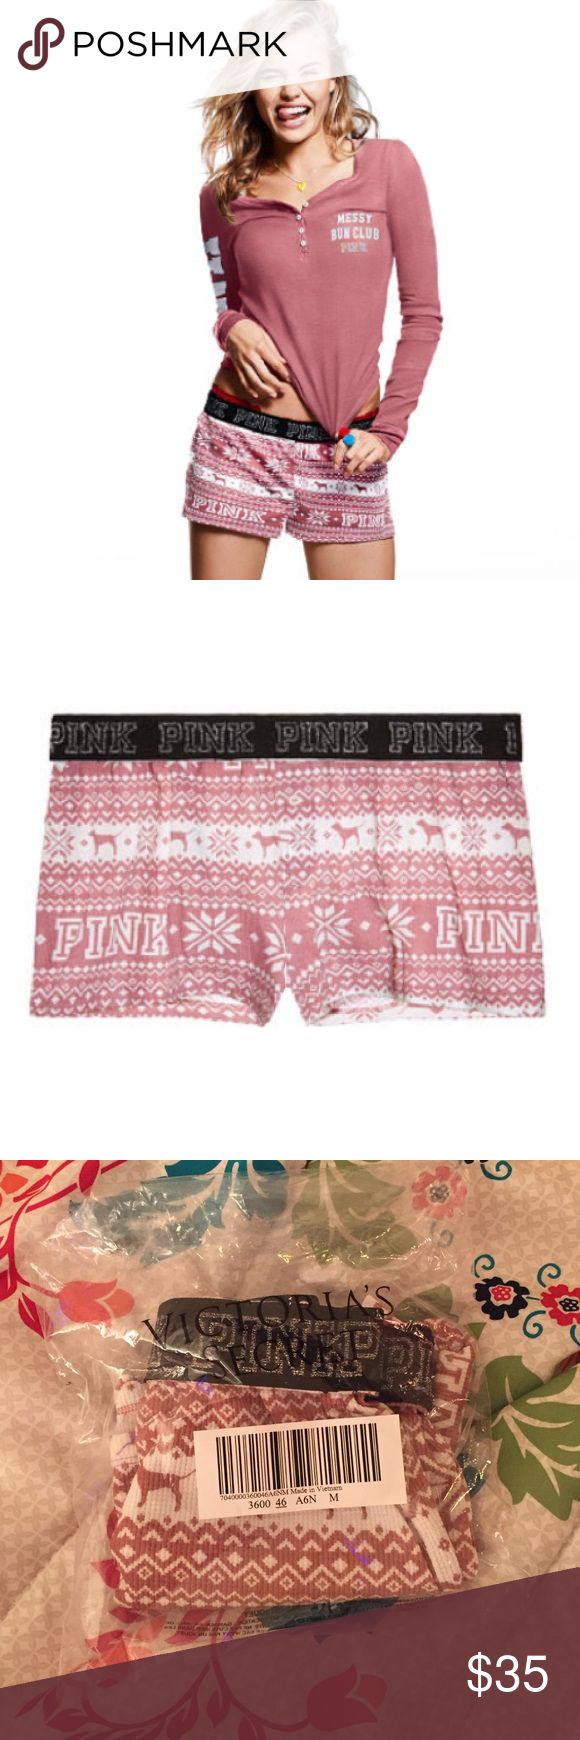 1 day SALE!! VS Pink thermal shorts! NWOT ✨Brand new in bag!✨ It didn't come with tags because i bought it online. Selling because they don't fit. Never worn, only tried on! Color: soft begonia pink. Adorable Christmas theme with cute little PINK dogs and snowflakes. Soft. They do stretch so if you wear a medium or large these would totally fit. PINK Victoria's Secret Intimates & Sleepwear Pajamas